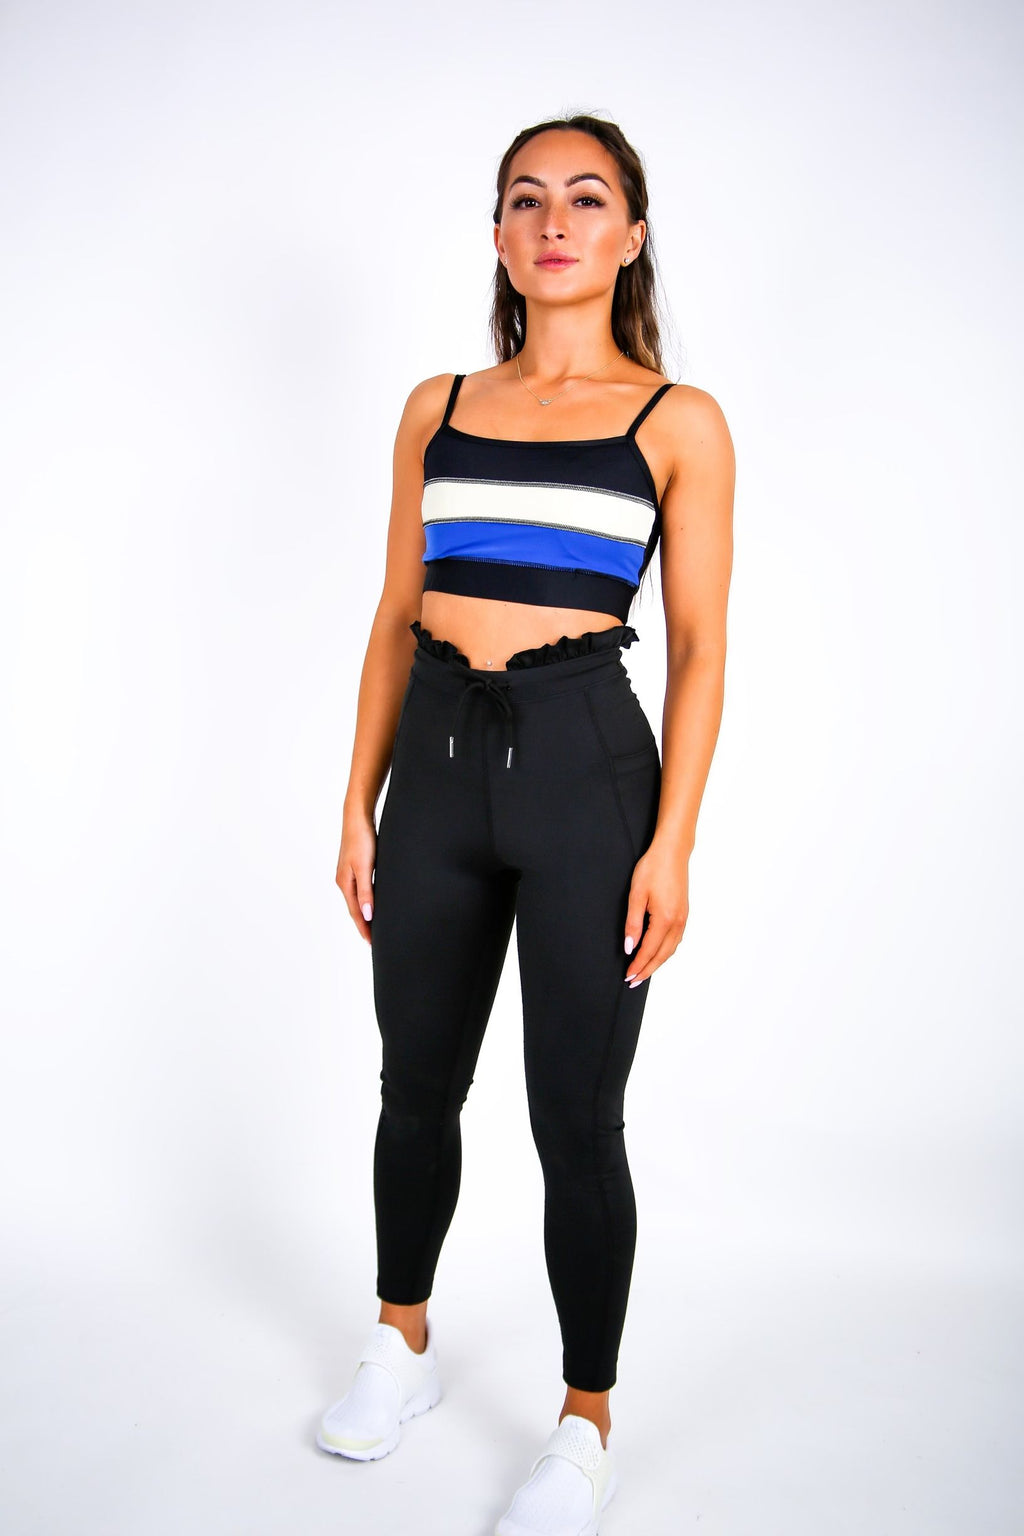 The Frill Waist Legging - BBx FITNESS